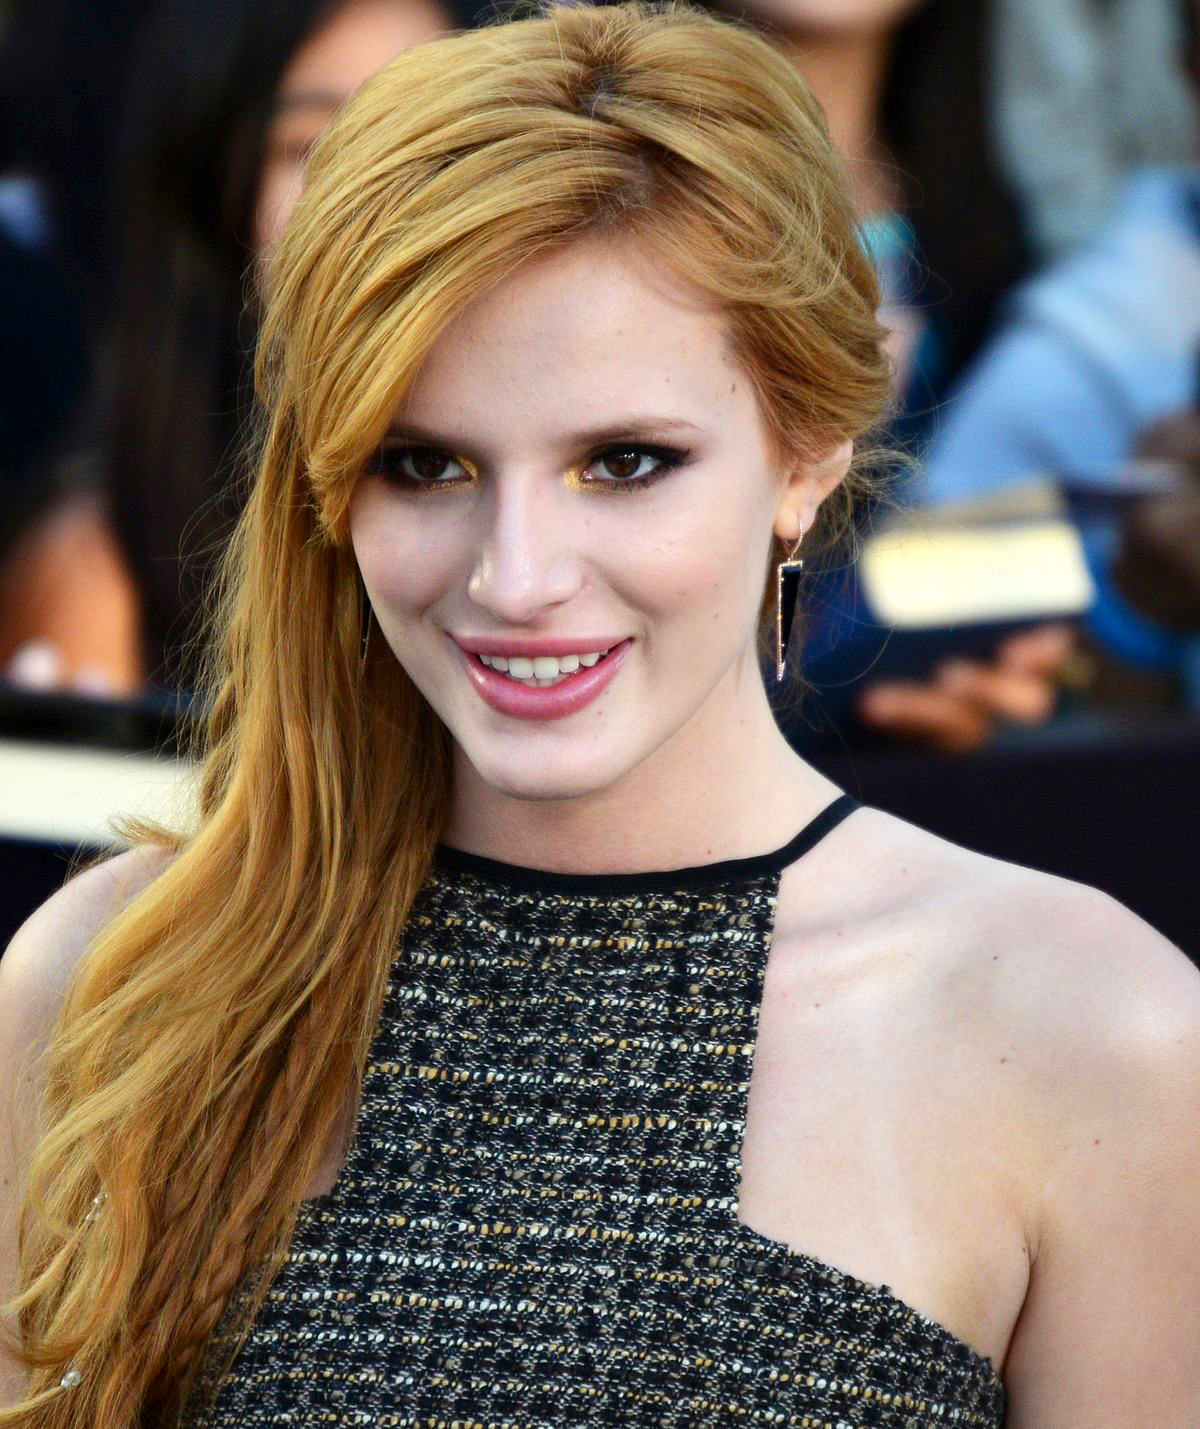 Bella Thorne earned a  million dollar salary - leaving the net worth at 2 million in 2018